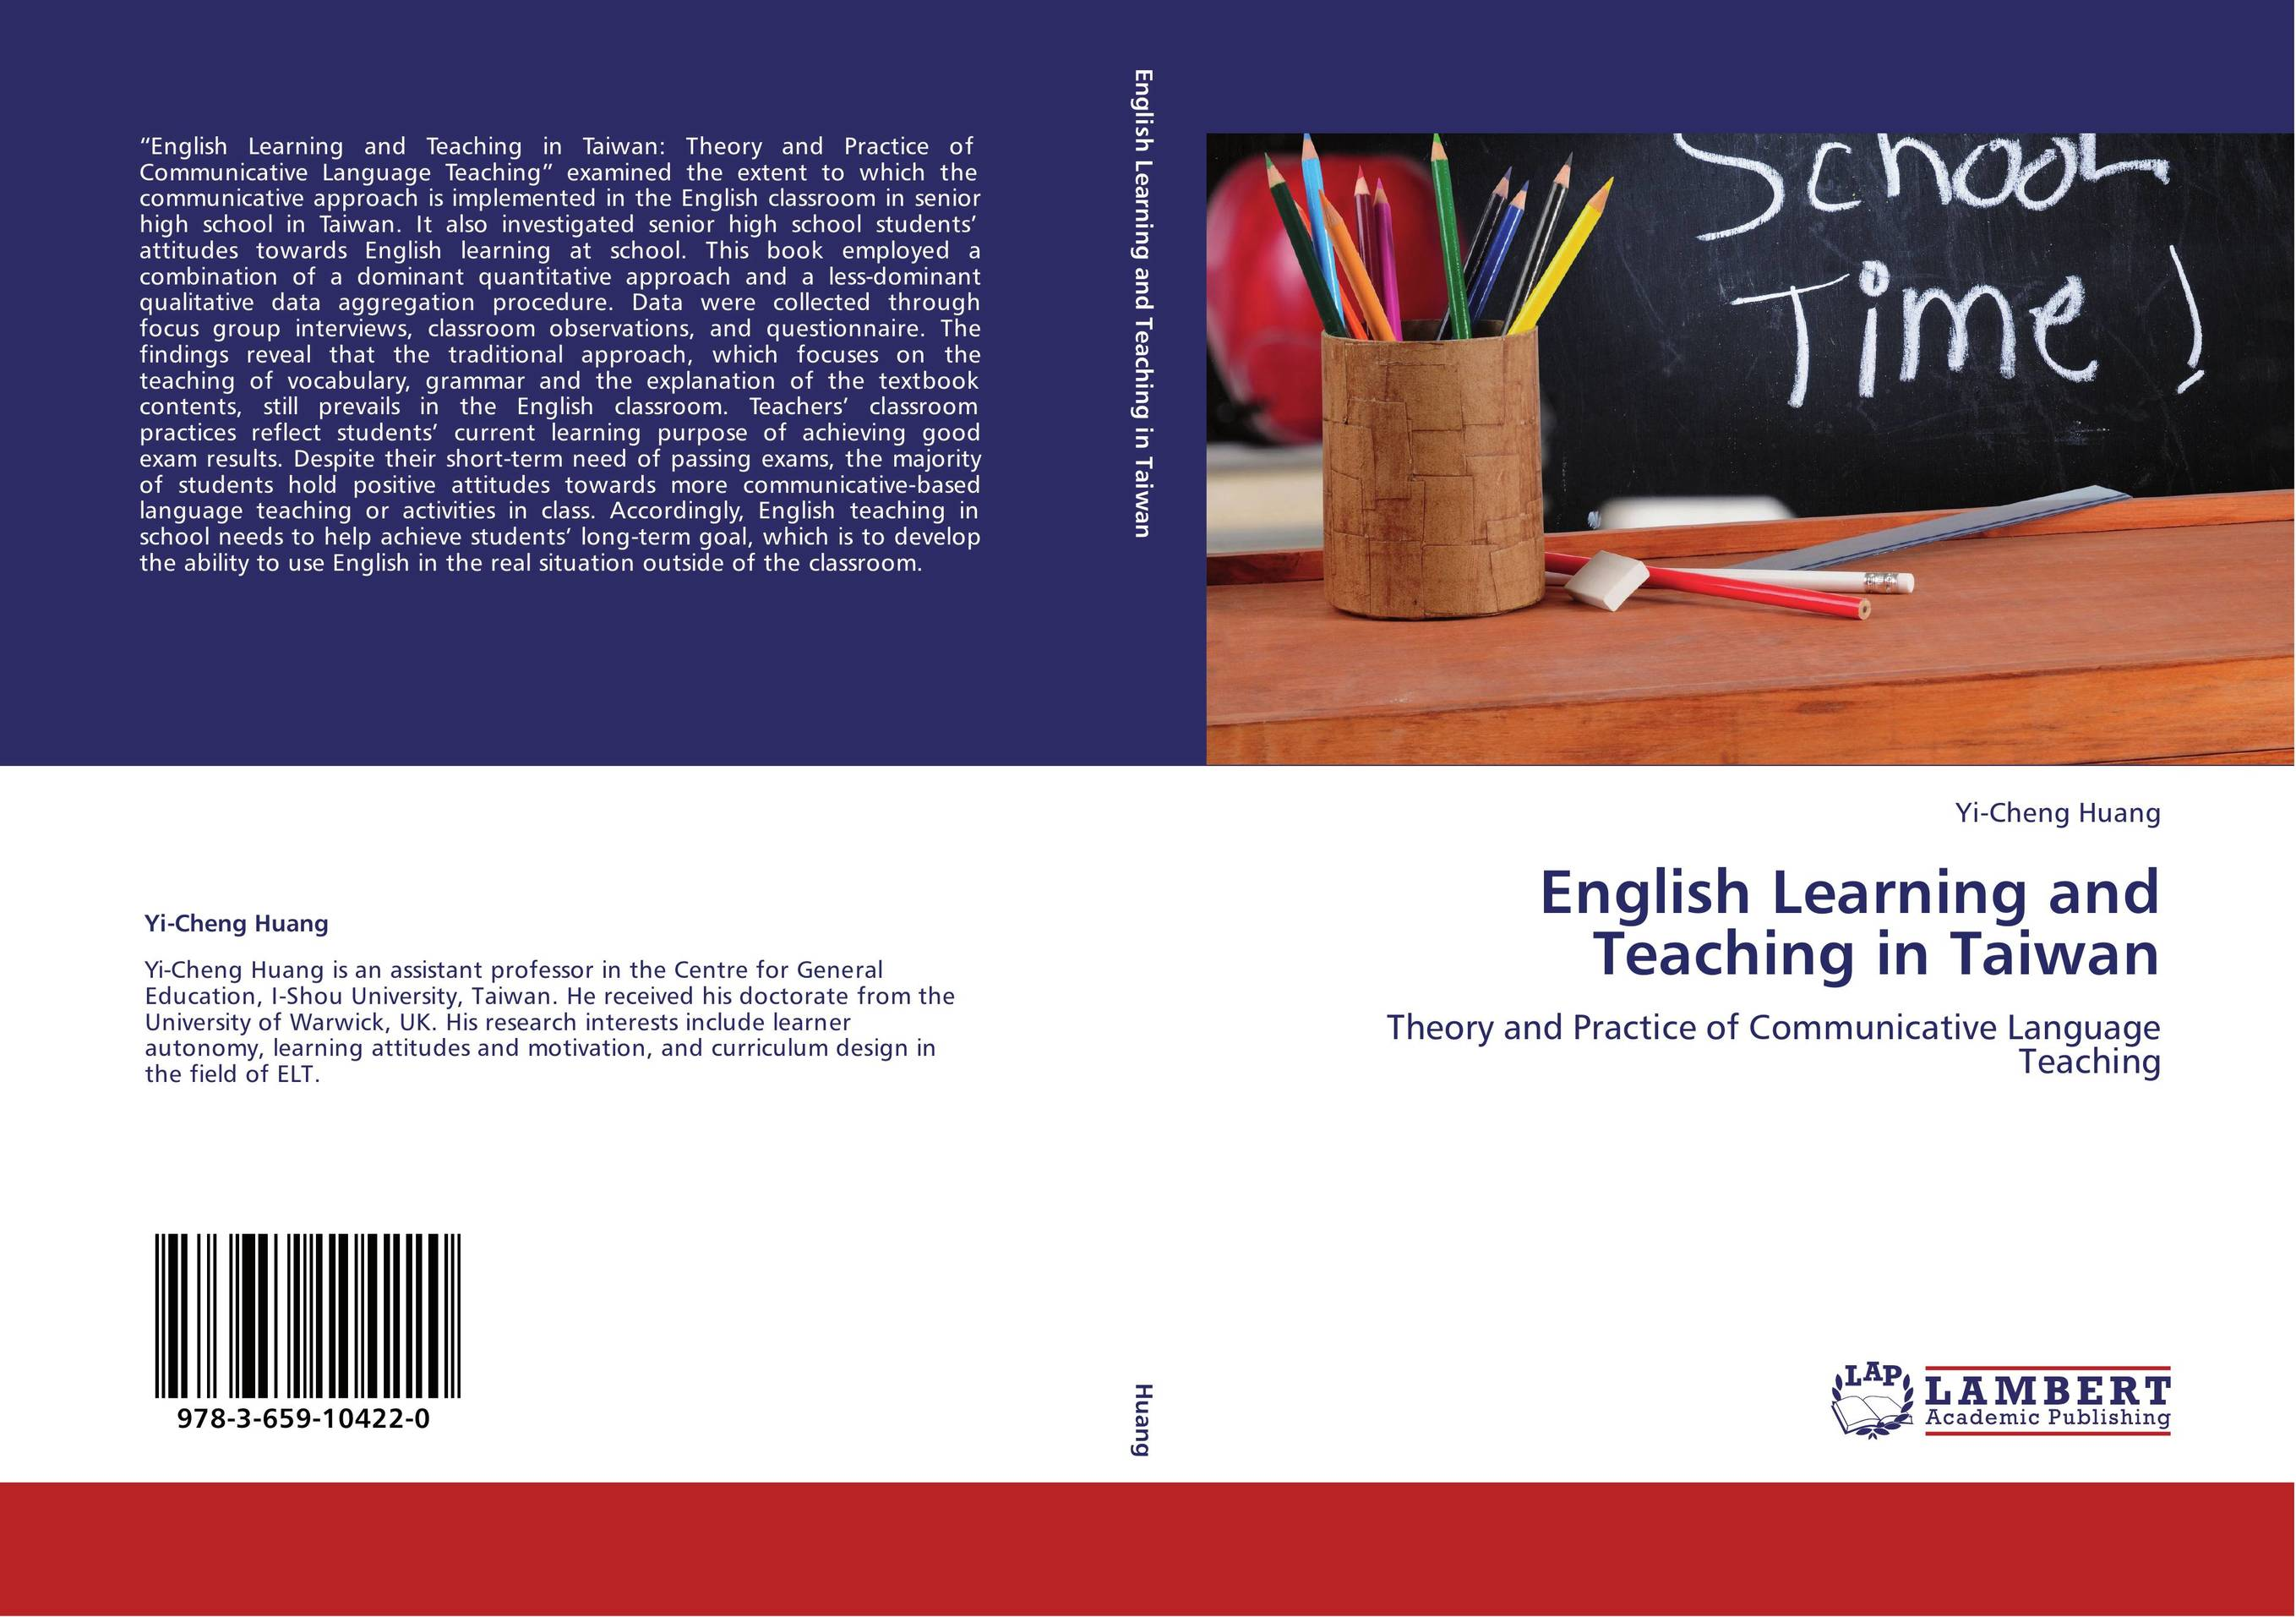 communicative approach in english teaching The communicative approach, also known as communicative language teaching (clt), emphasizes interaction and problem solving as both the means and the ultimate goal of learning english - or any language.